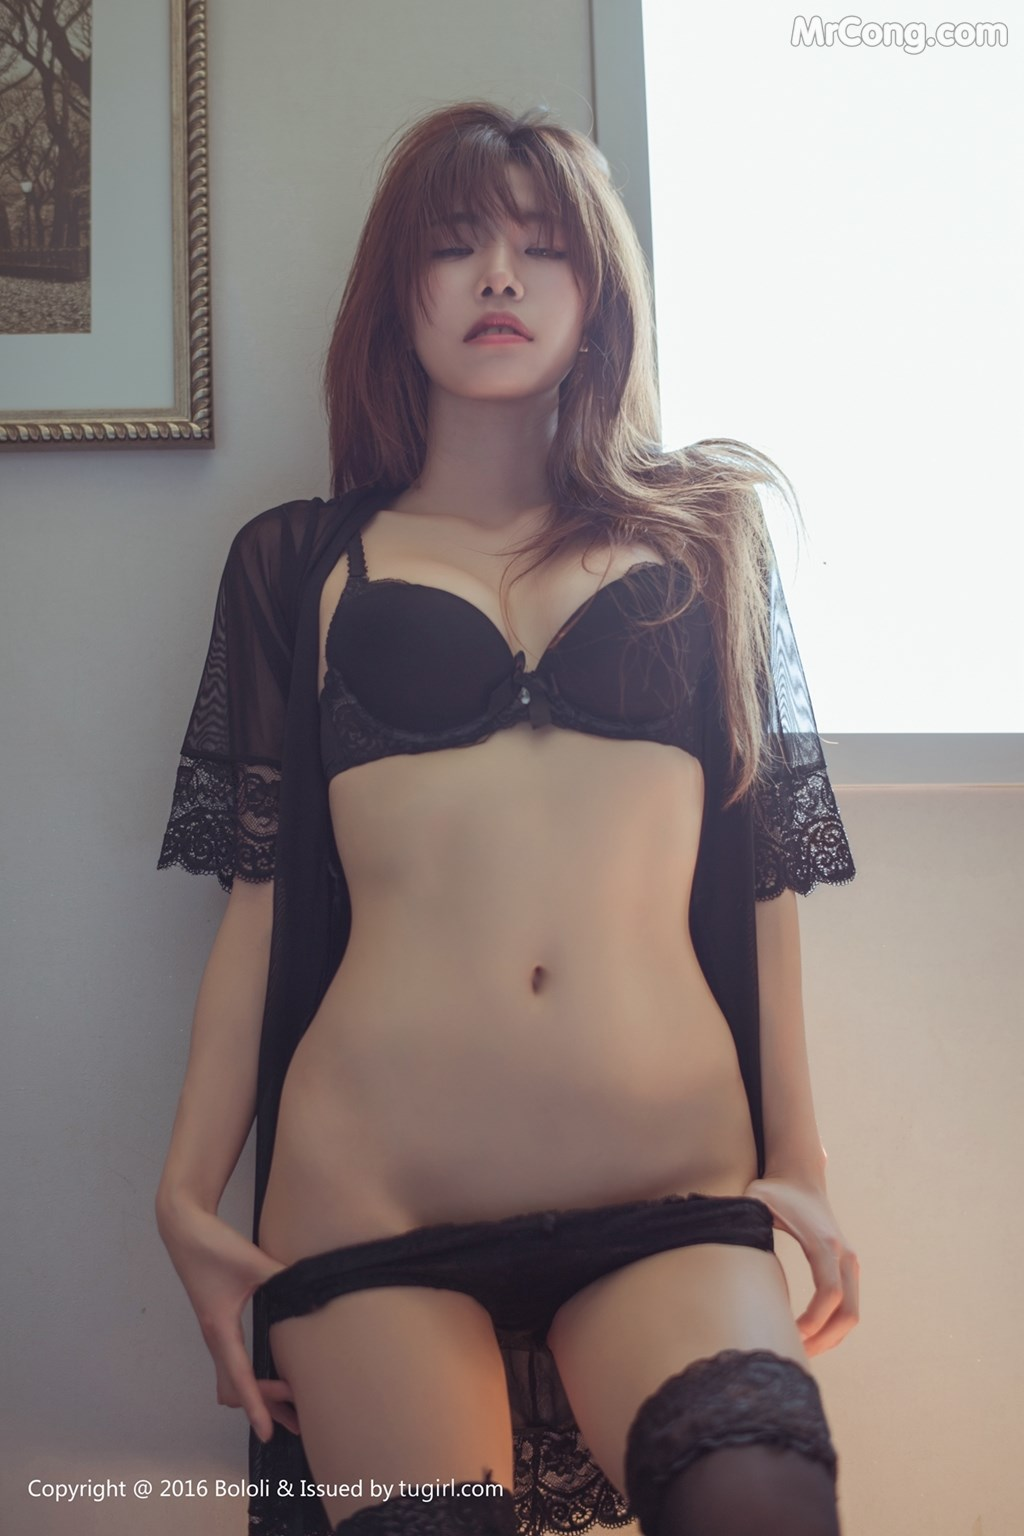 Image BoLoli-2017-06-26-Vol.074-Kbora-MrCong.com-034 in post BoLoli 2017-06-26 Vol.074: Kbora model (64 photos)